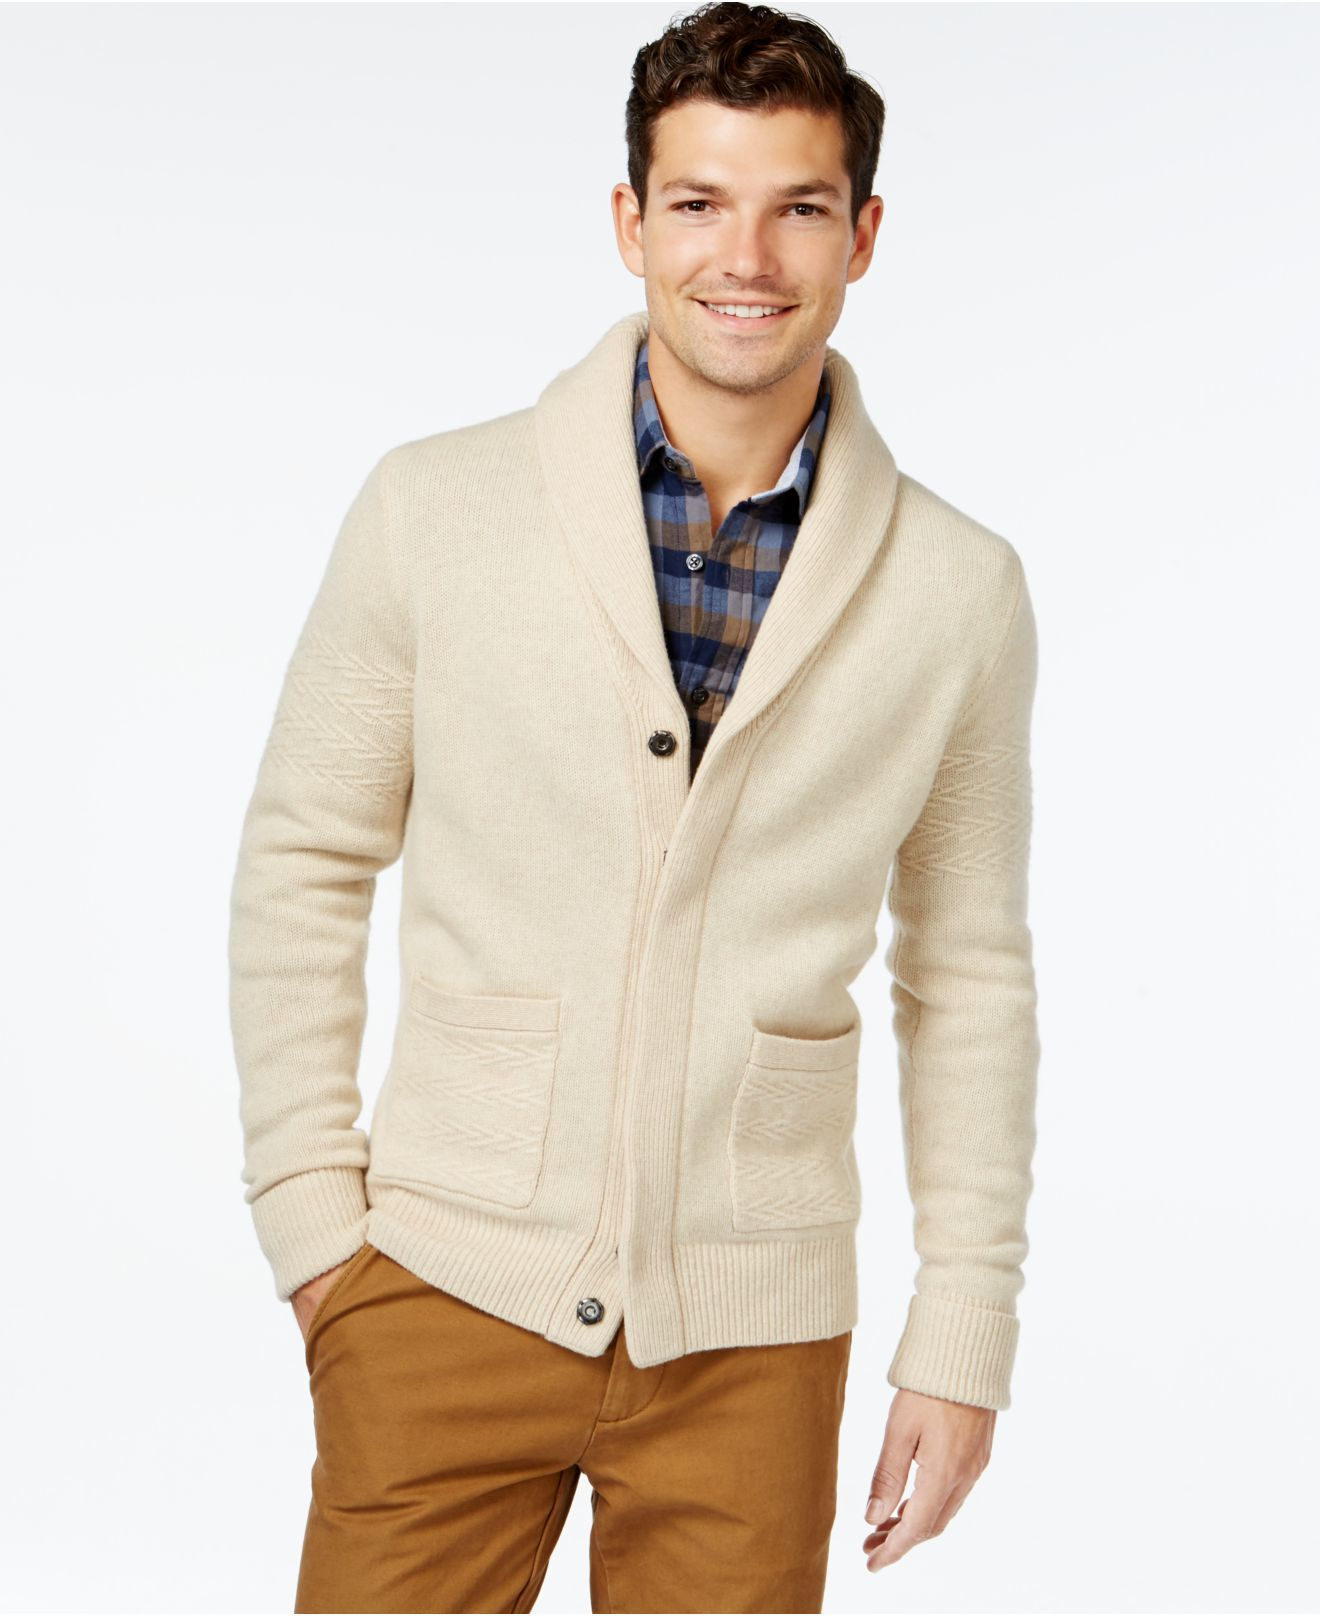 0efee81e38 How to combine a Tommy Hilfiger cardigan Tommy Hilfiger cardigans gallery  SSTNLDR